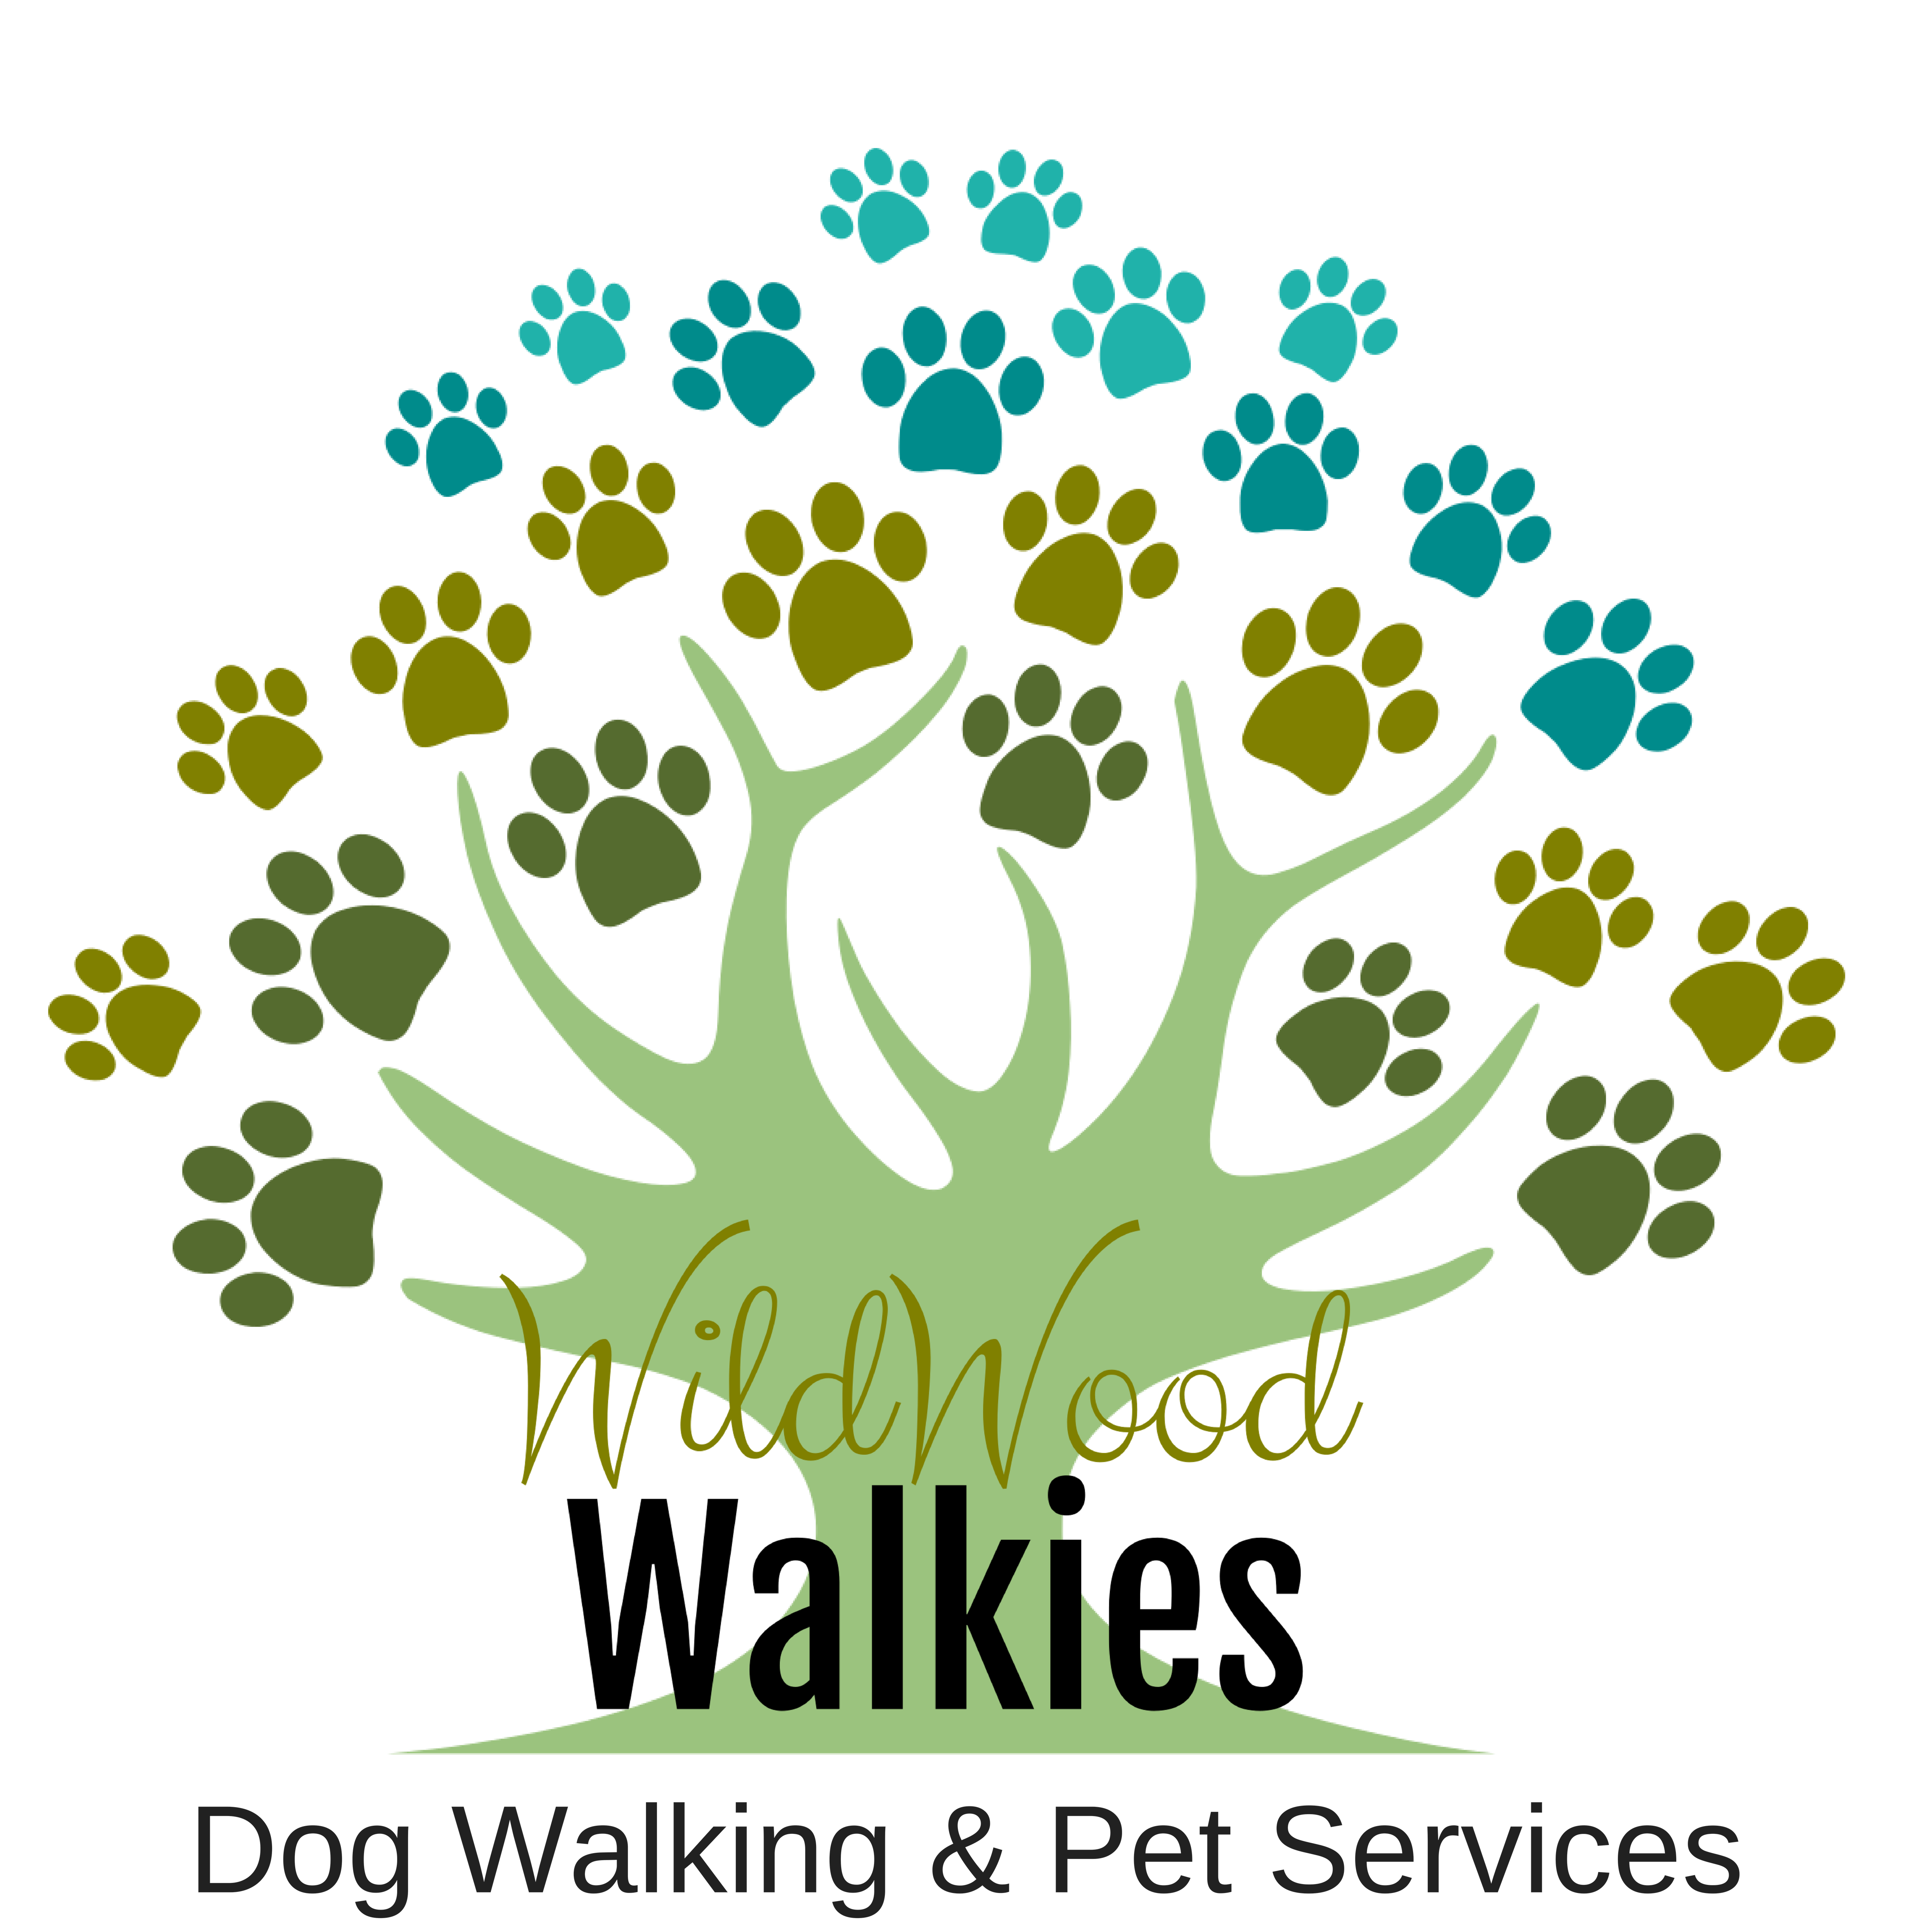 Tree clipart dog. Pet services torquay wildwood